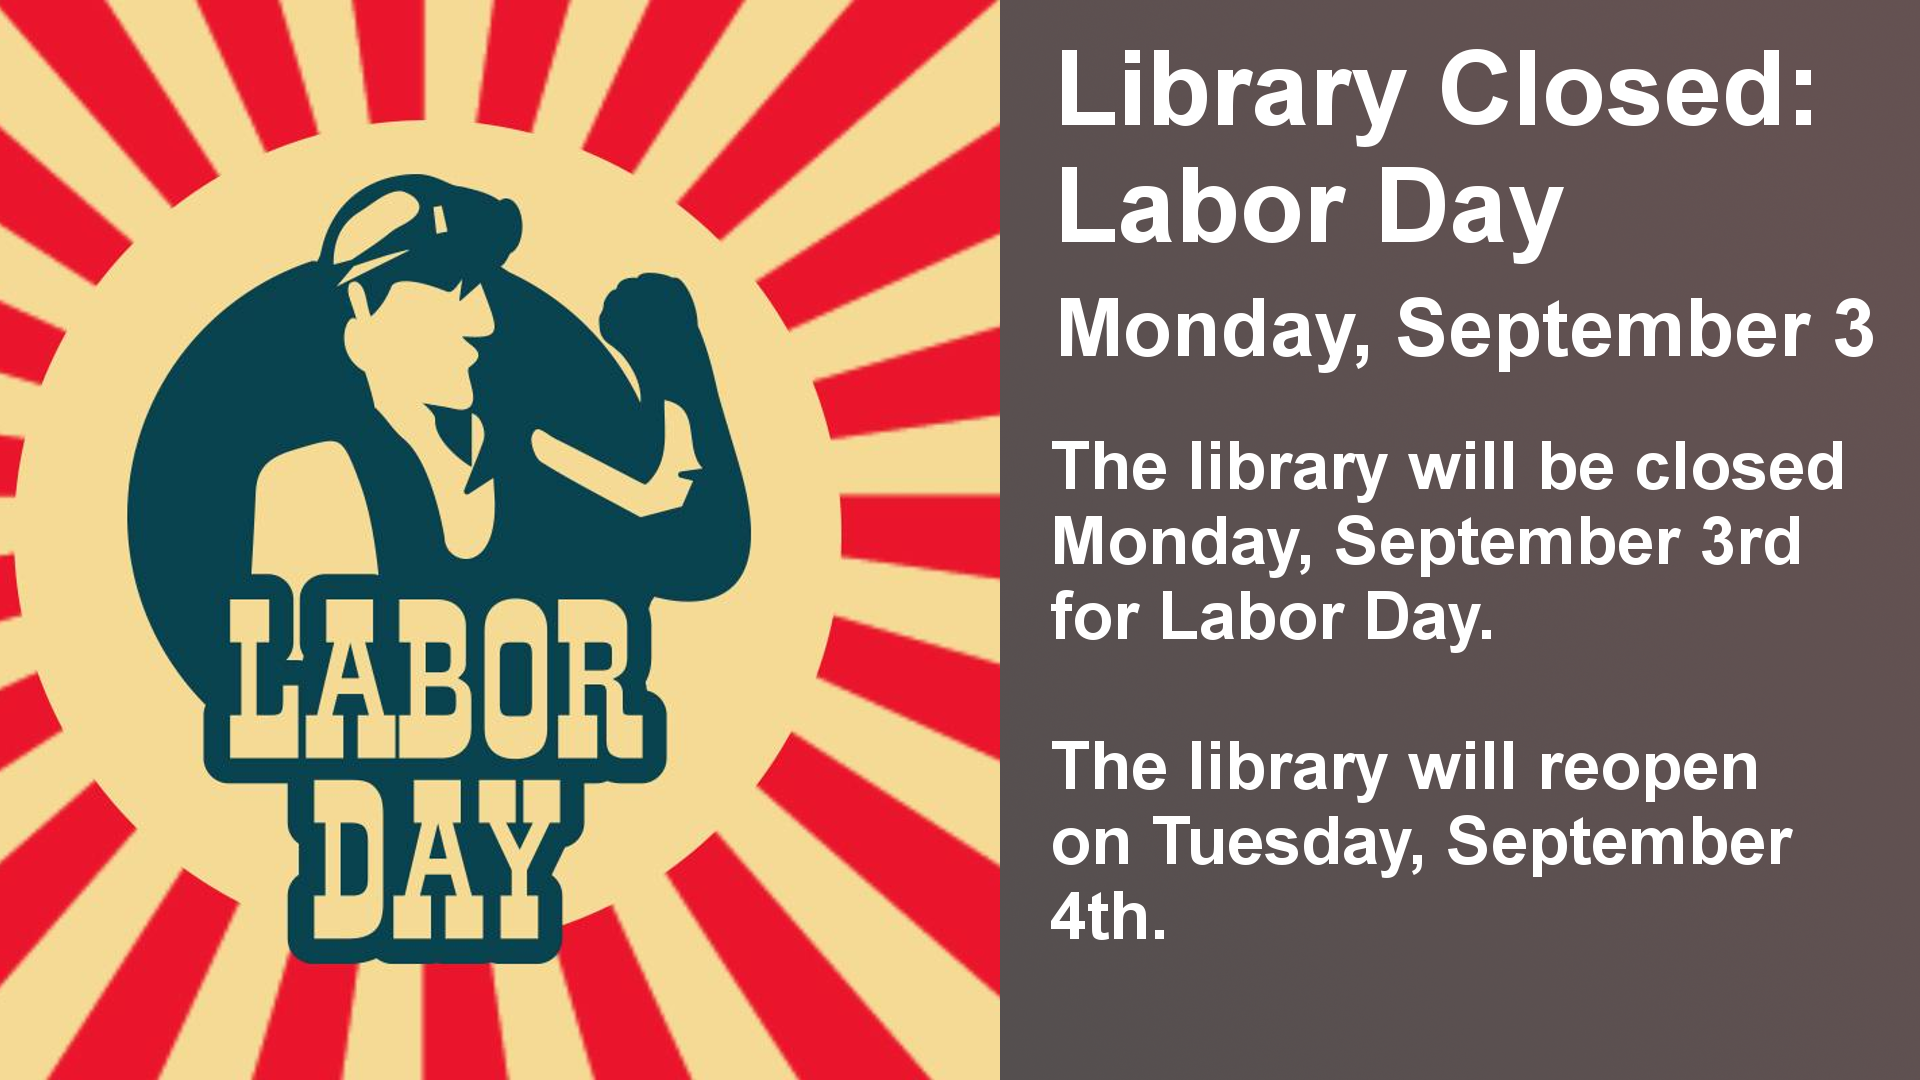 The library will be closed Monday, September 3rd for labor day. The library will reopen on Tuesday, September 4th